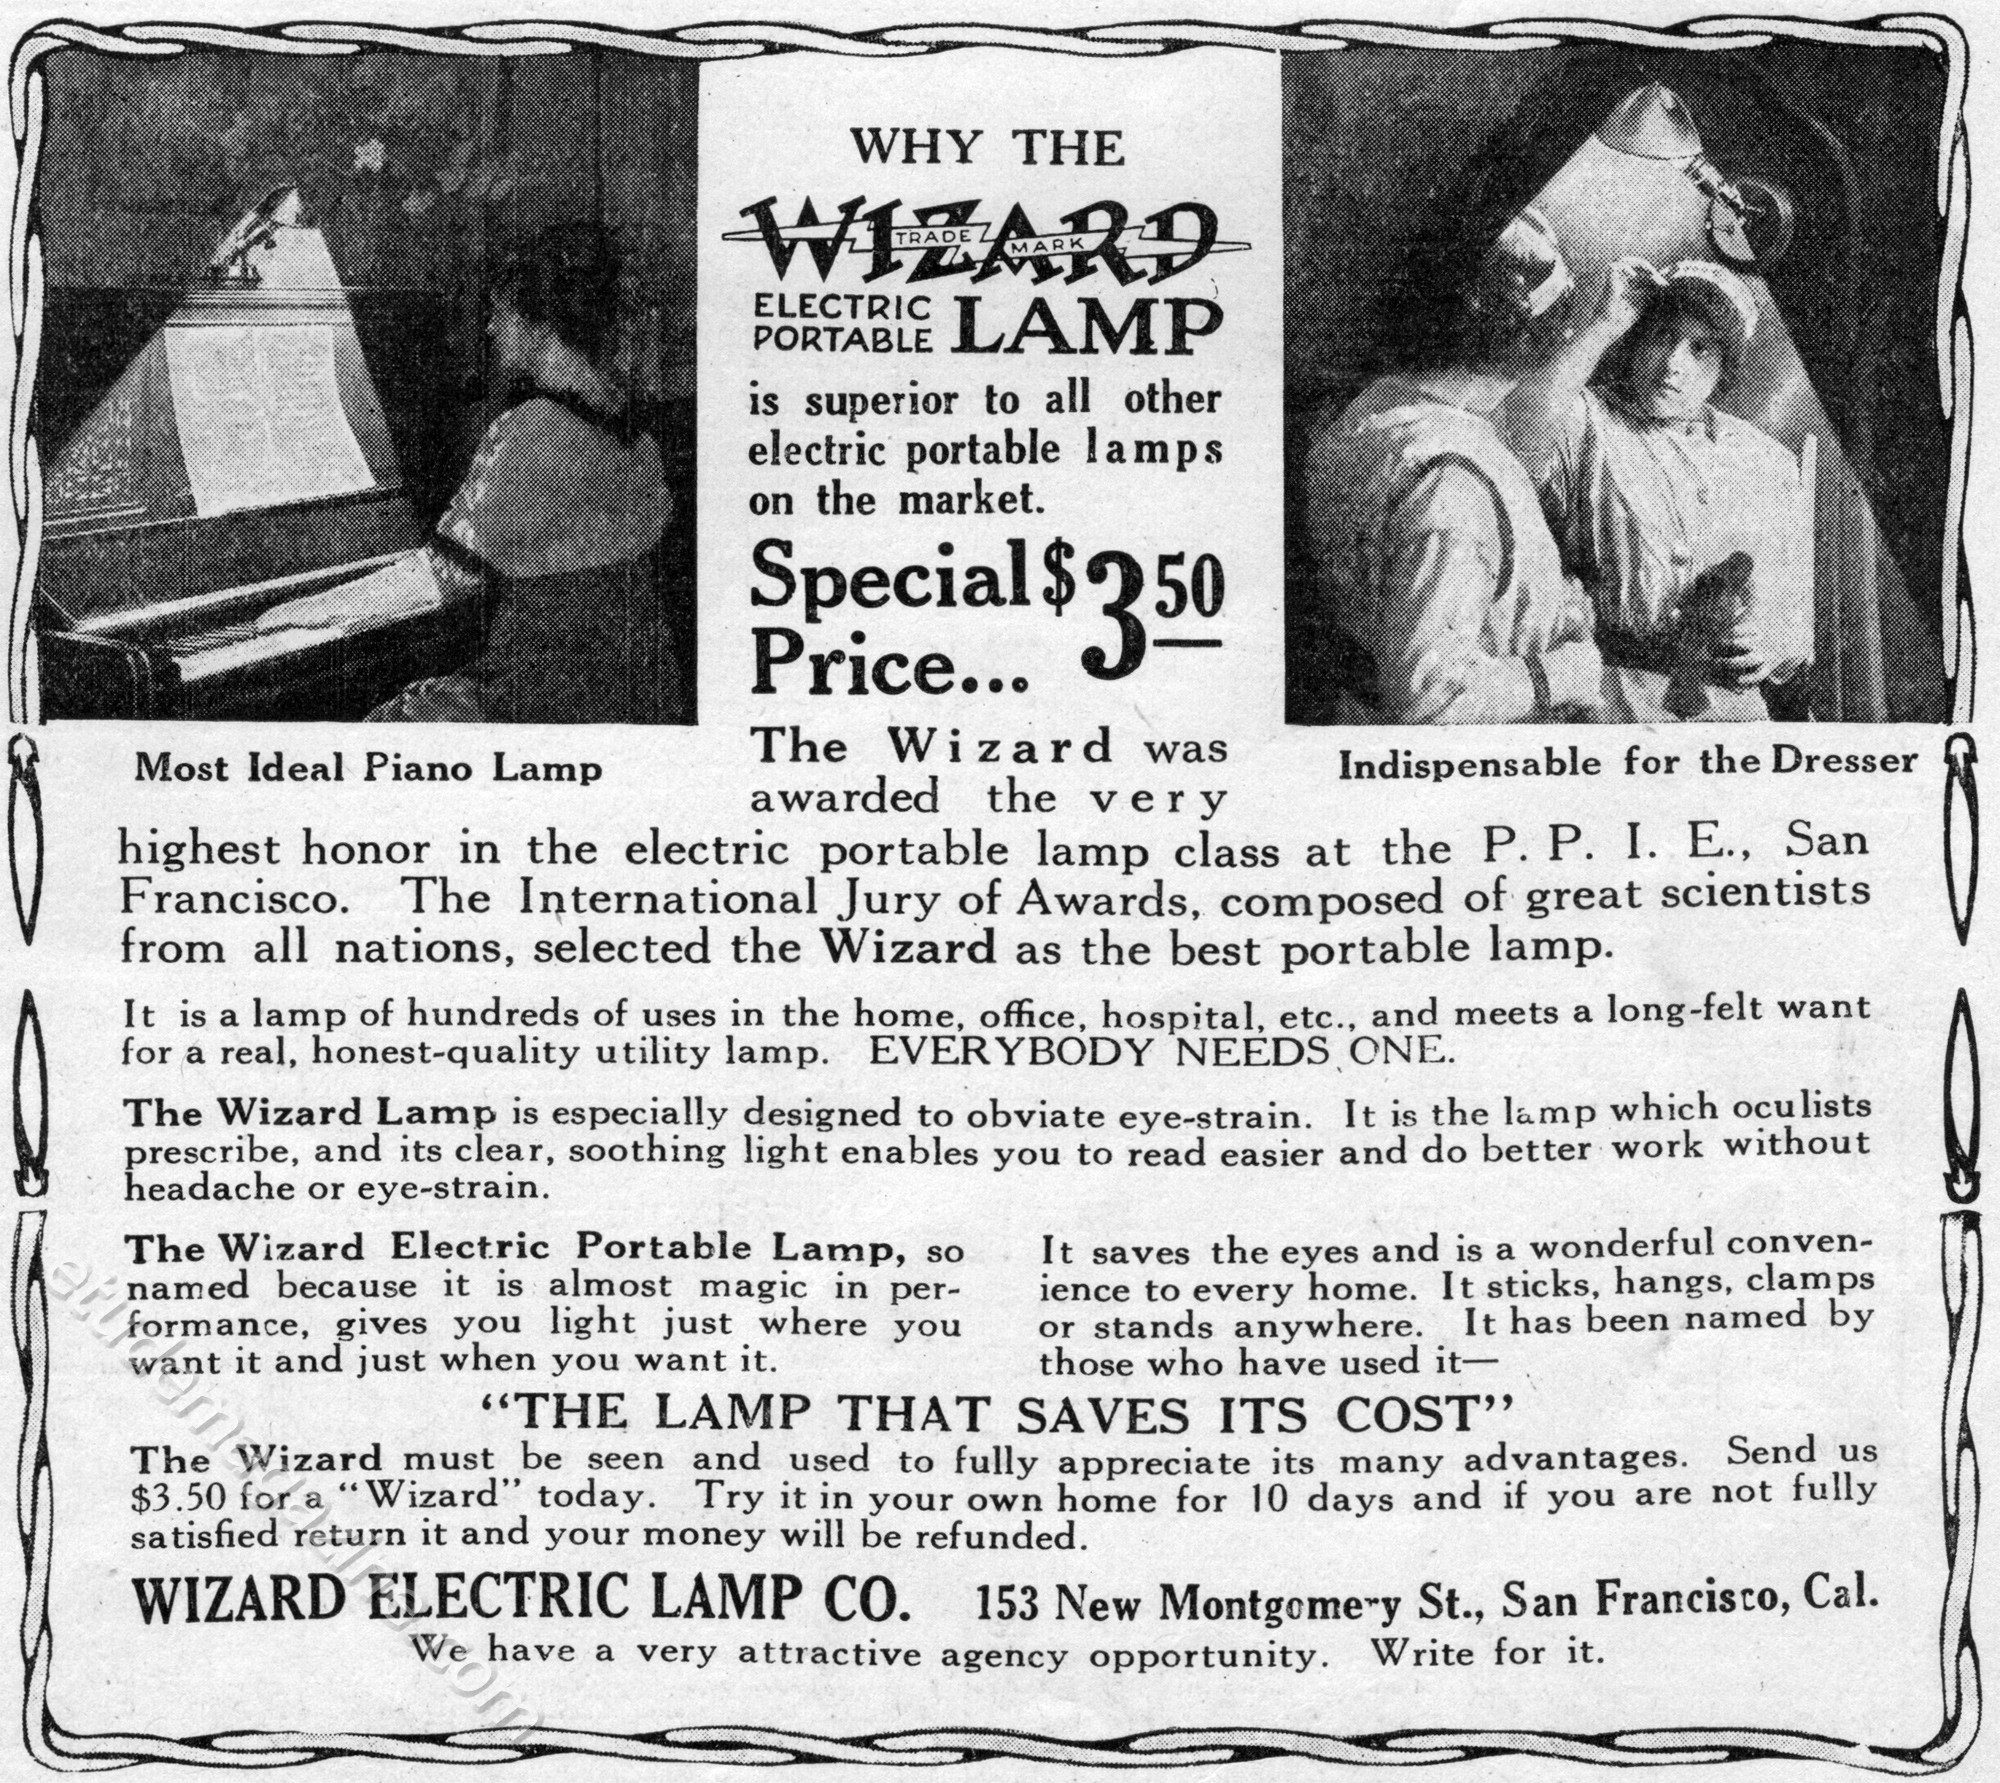 Wizard Electric Portrable Lamp